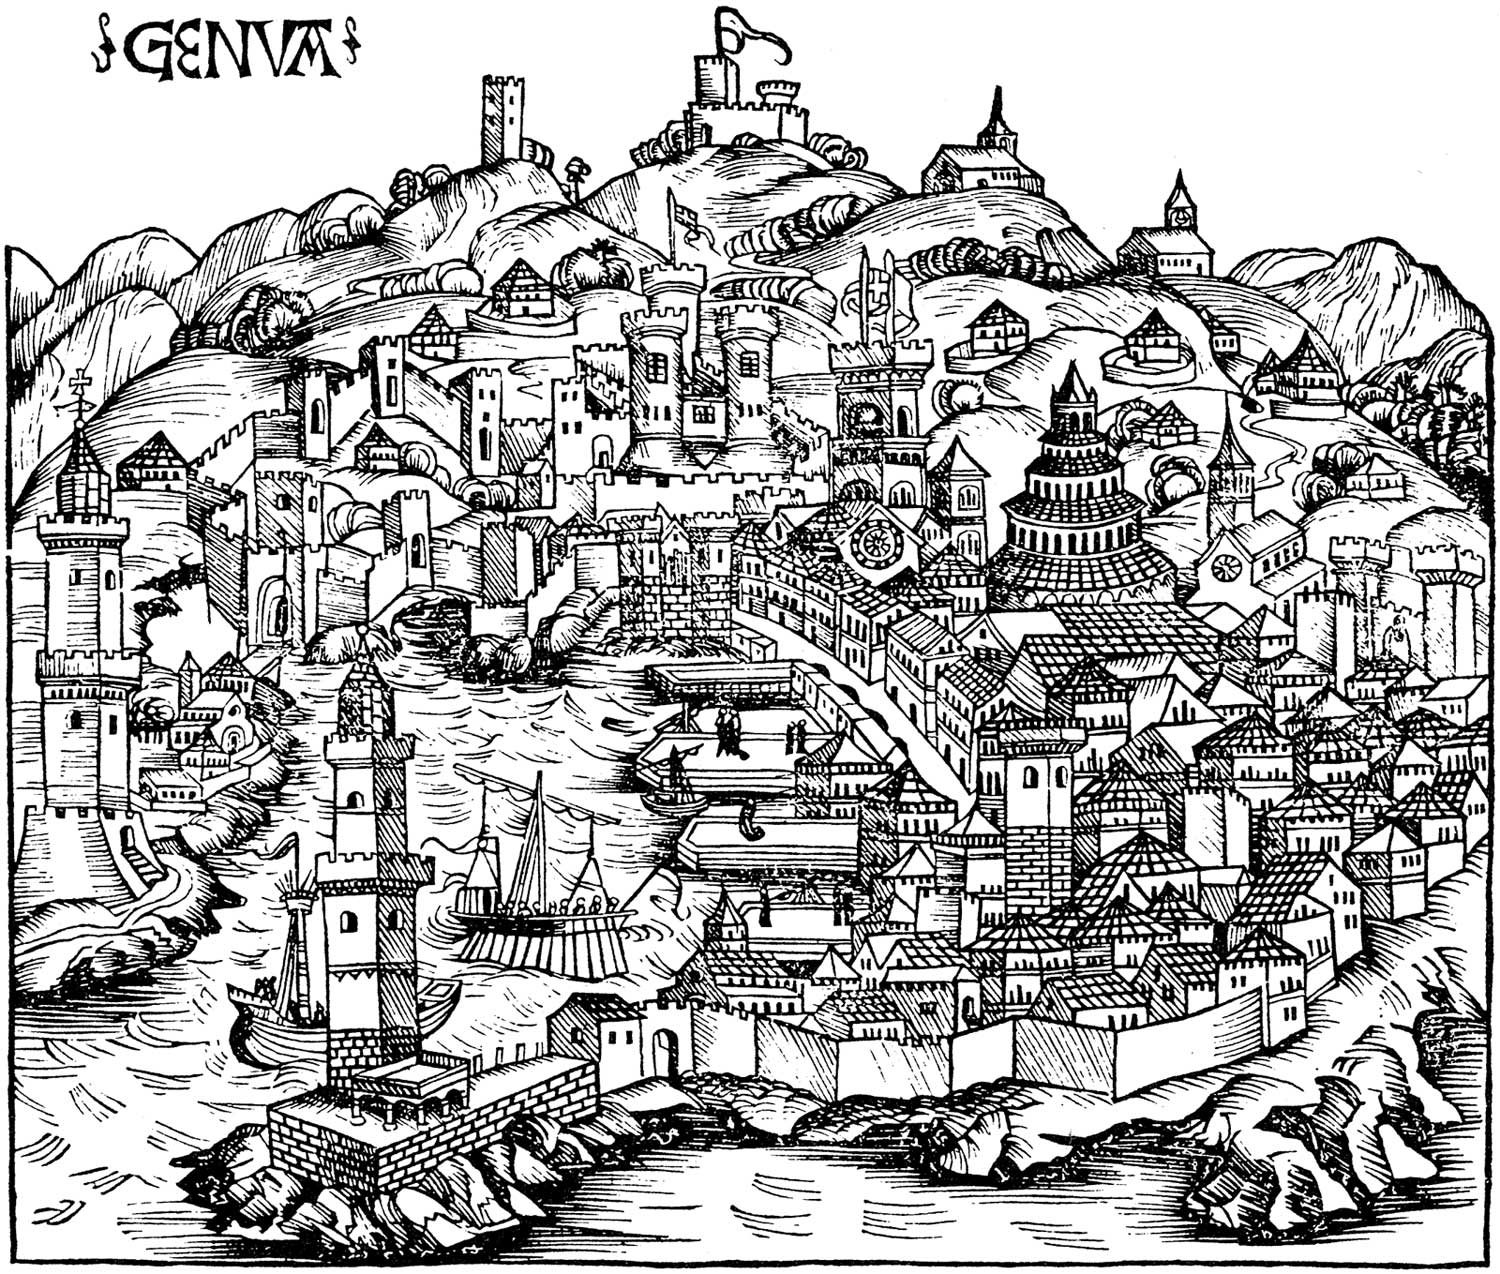 Historical Ancient Map of Genoa